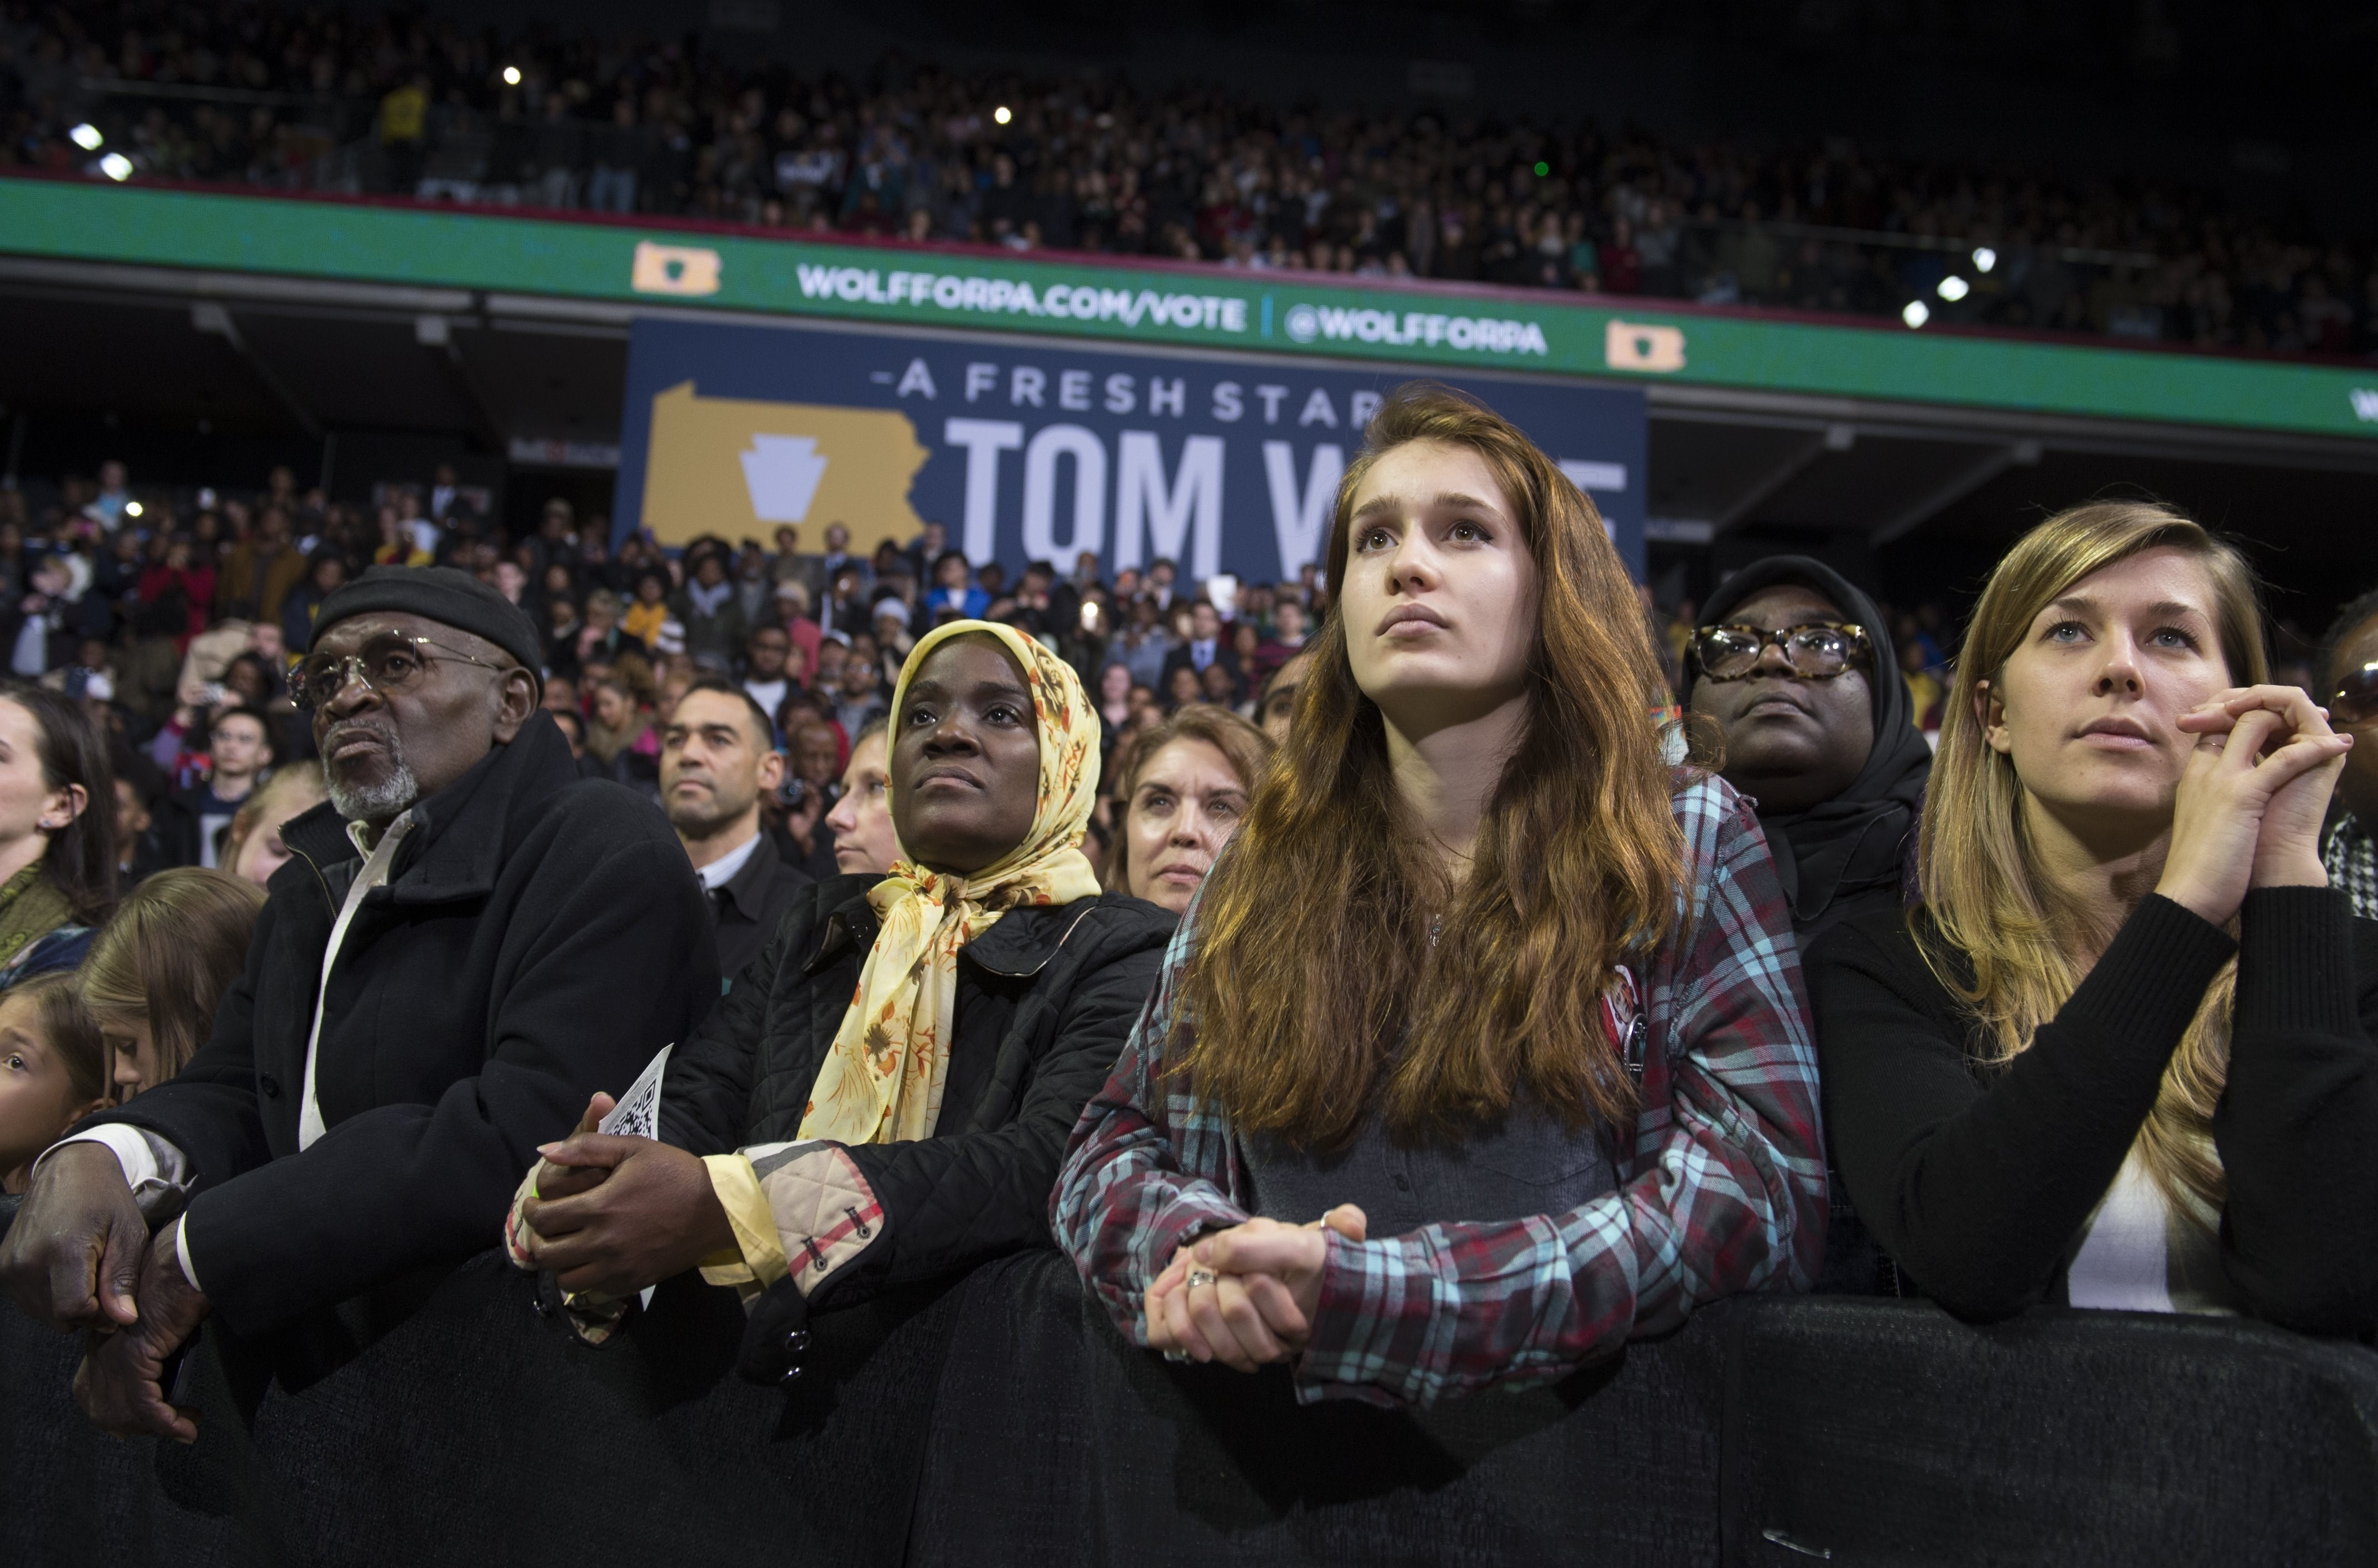 Supporters listen as US President Barack Obama speaks at a campaign rally for Tom Wolf, Democratic candidate for Pennsylvania Governor, at the Liacouras Center at Temple University in Philadelphia, Pennsylvania, November 2, 2014.